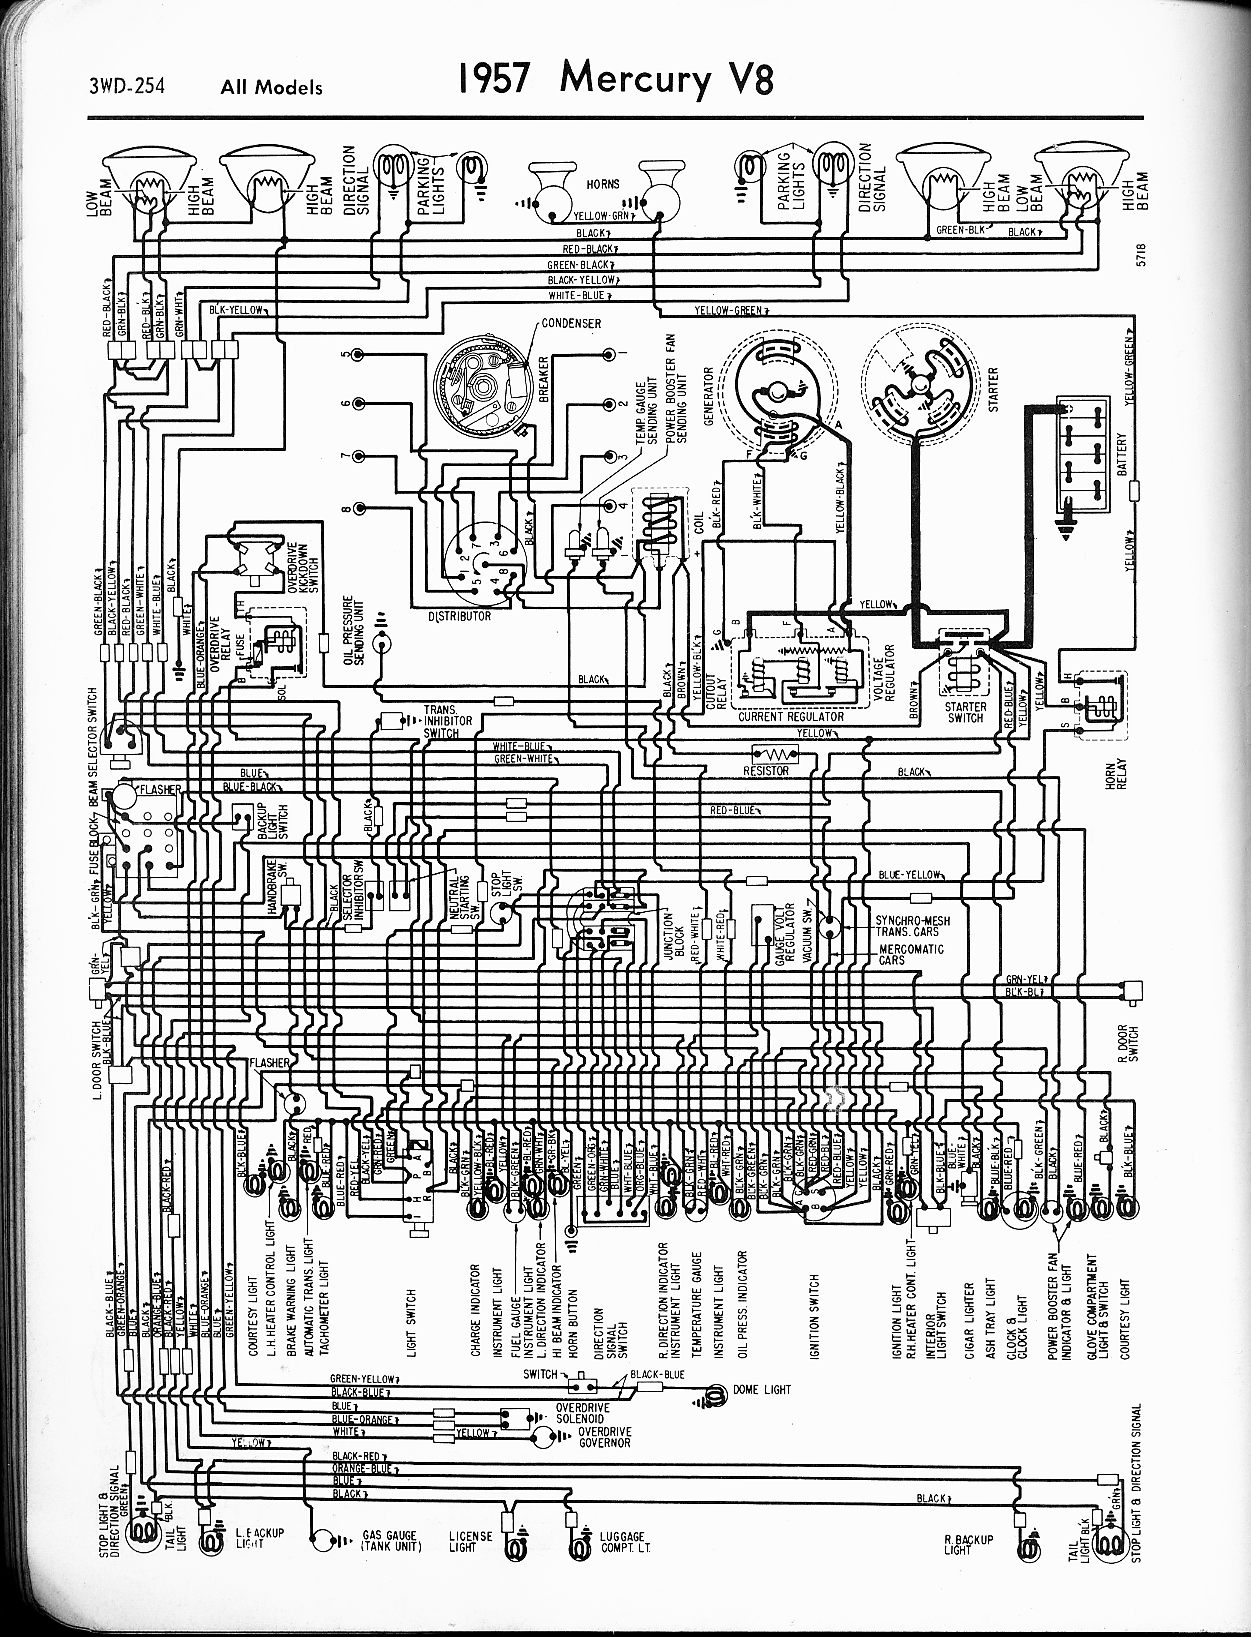 1969 Mercury Wire Diagrams Archive Of Automotive Wiring Diagram Hyundai Veloster Radio The Old Car Manual Project Rh Oldcarmanualproject Com